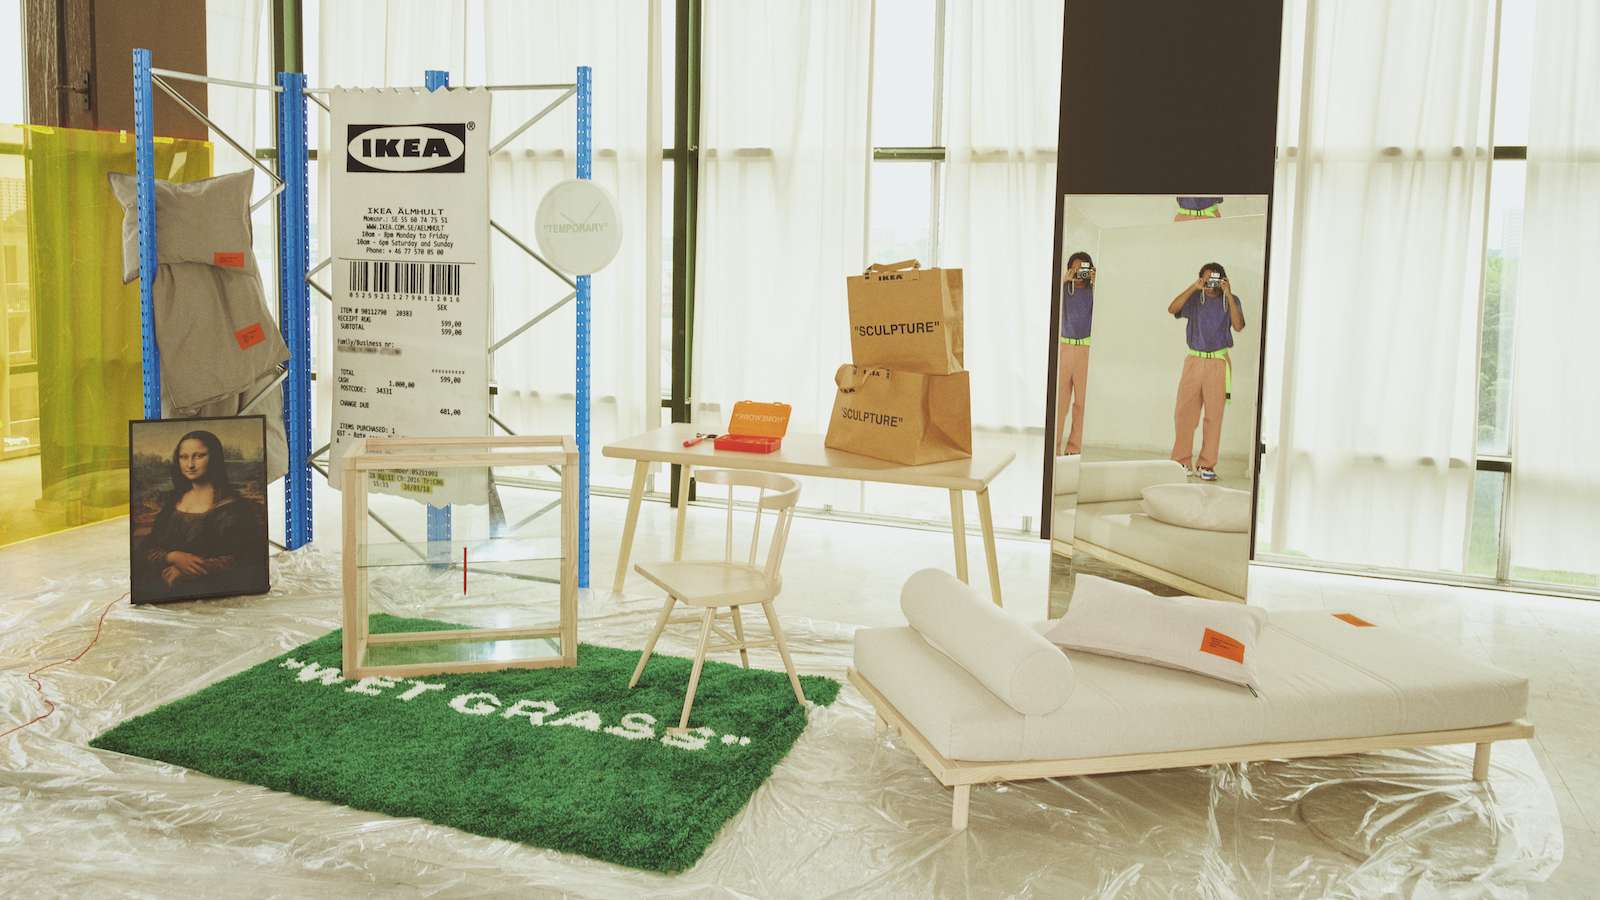 Ikea's Virgil Abloh collaboration is almost here—and it will be tricky to shop